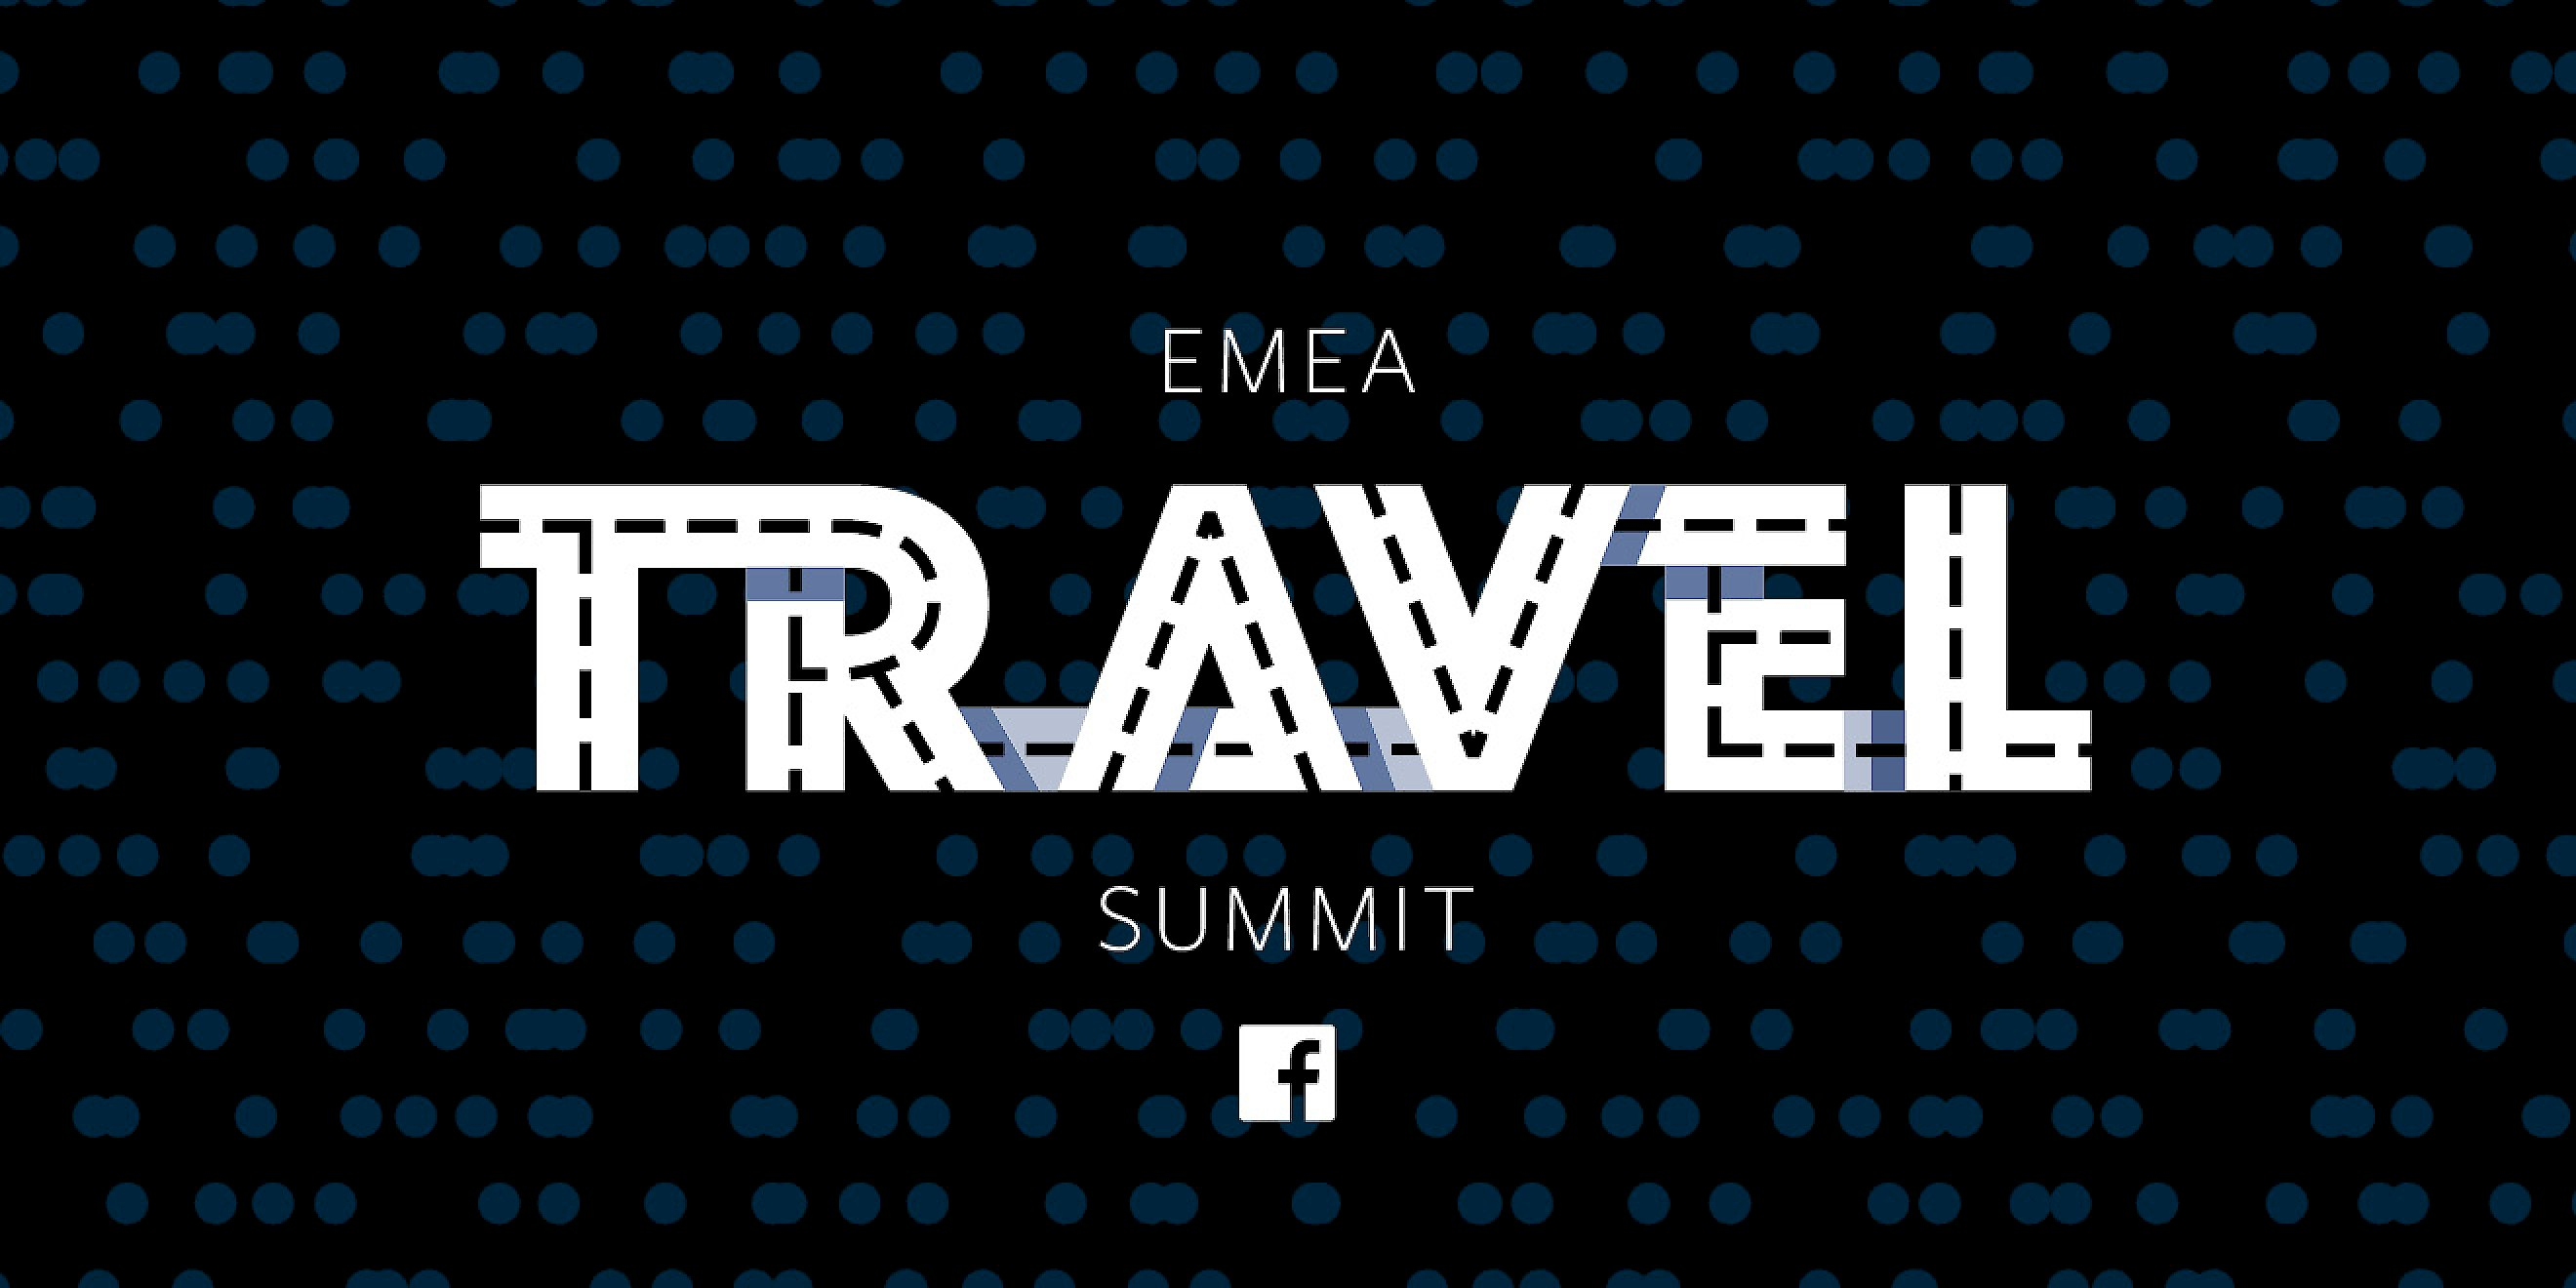 Facebook EMEA Travel Summit event branding by Human After All